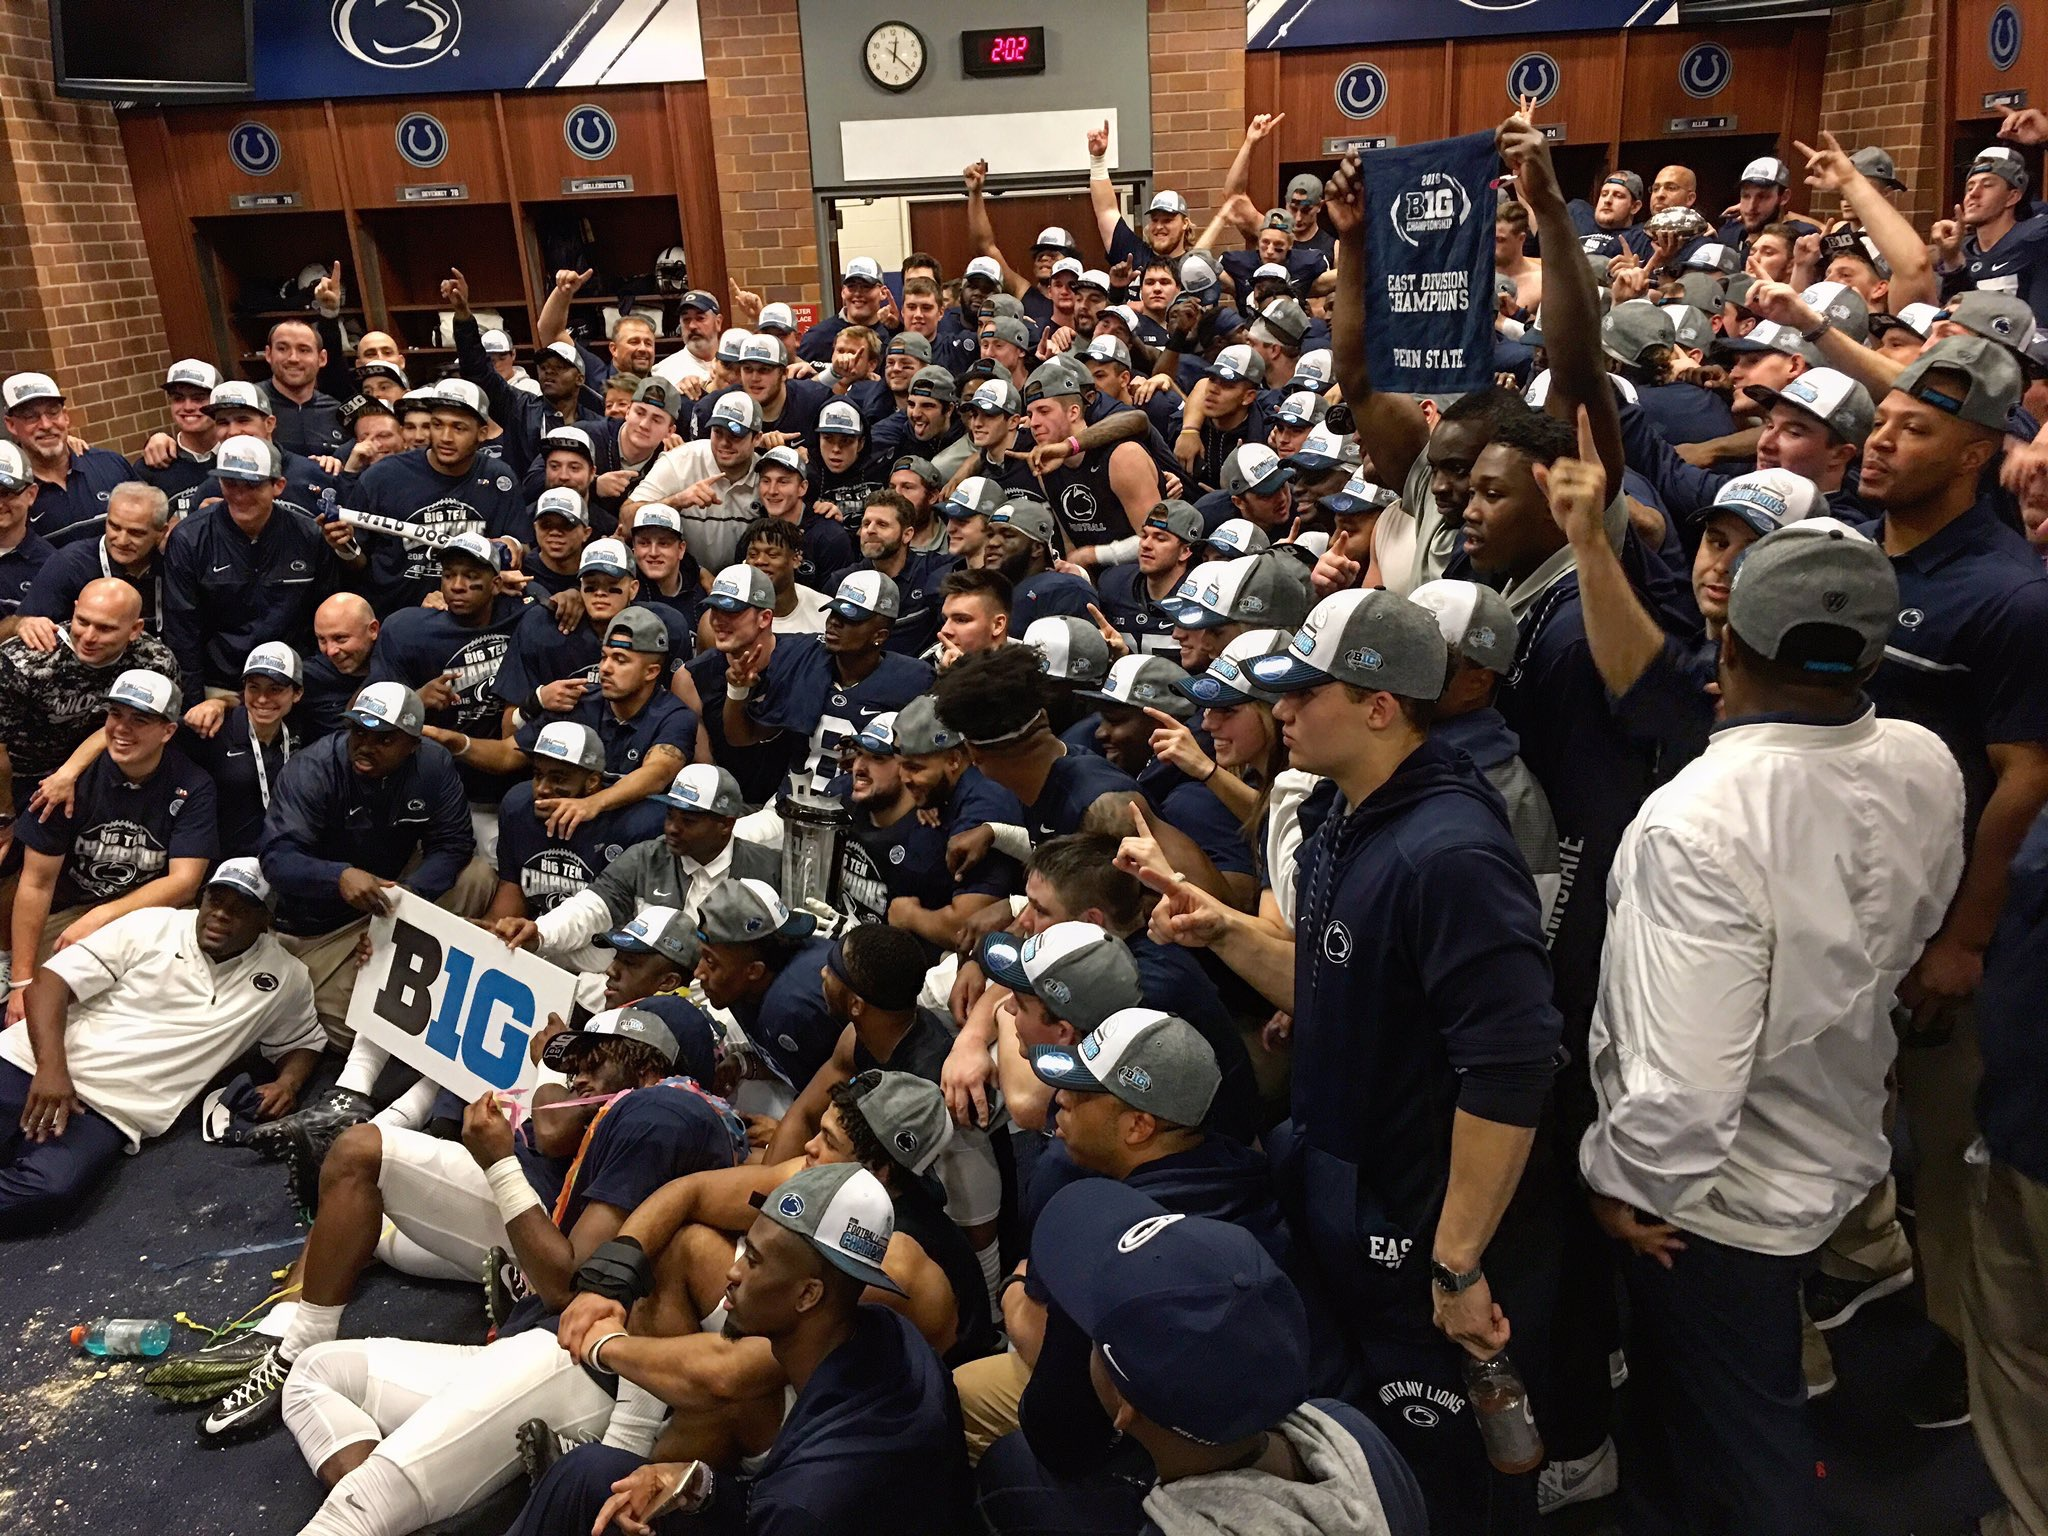 McSorley's Record Day Leads PSU Comeback for Conference Title